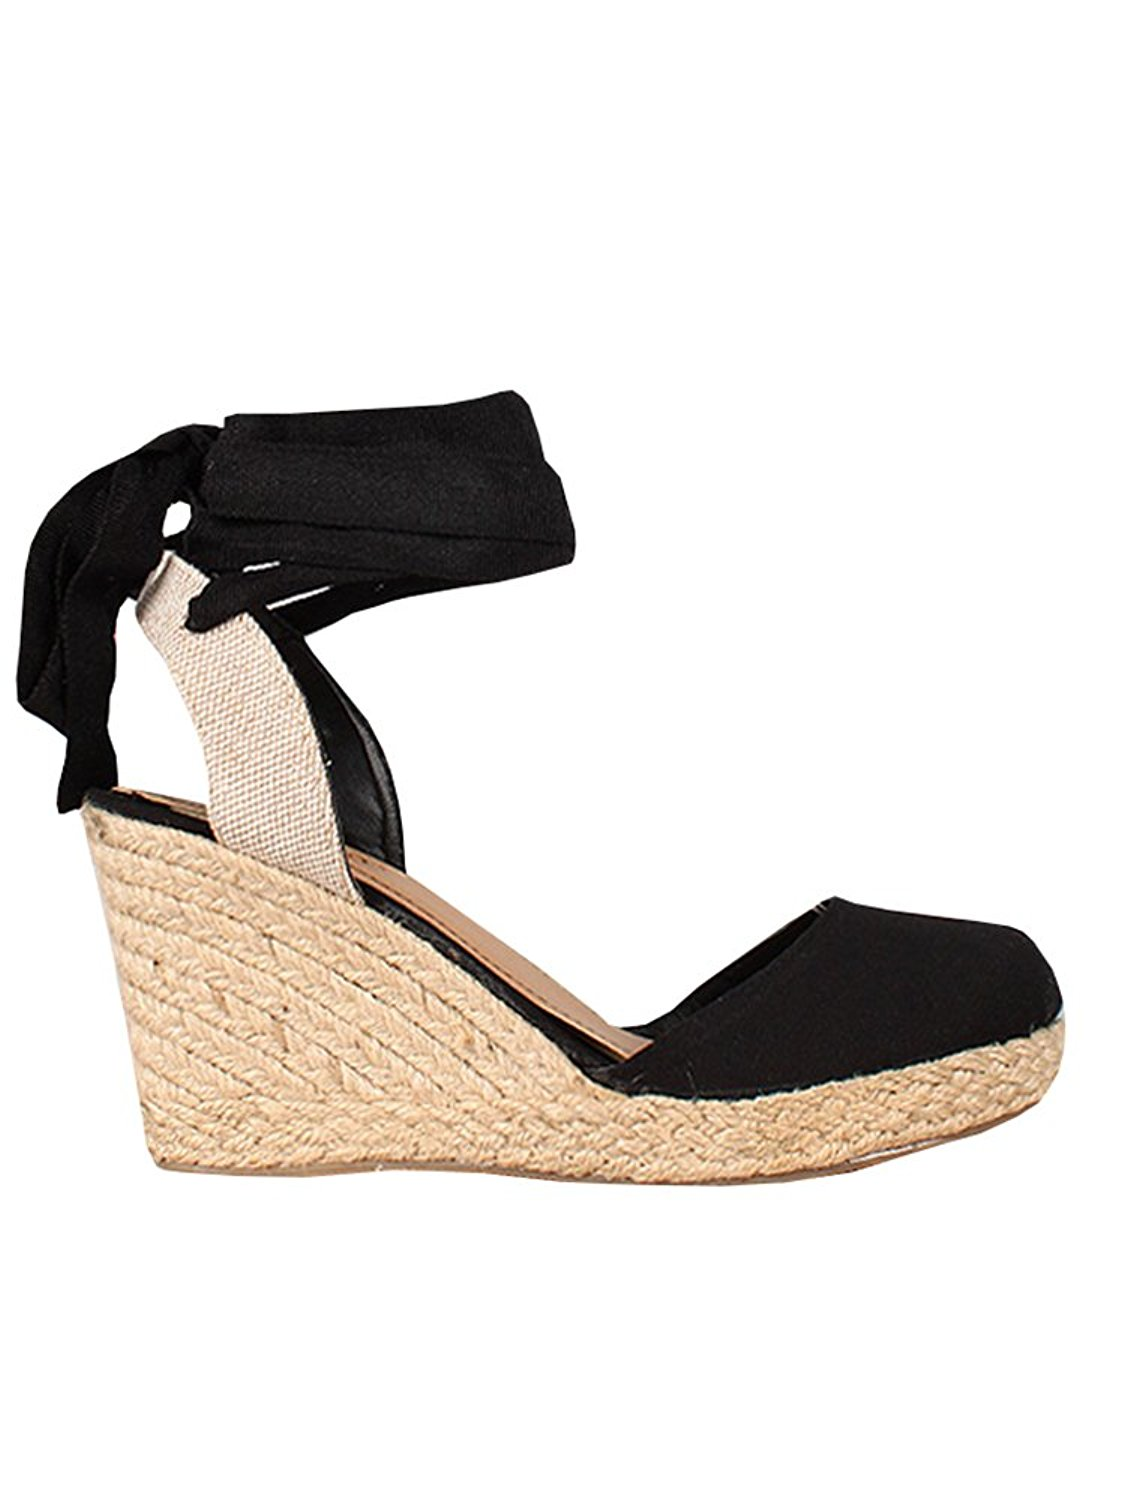 bf1a10283455d Cheap Ankle Tie Wedges, find Ankle Tie Wedges deals on line at ...